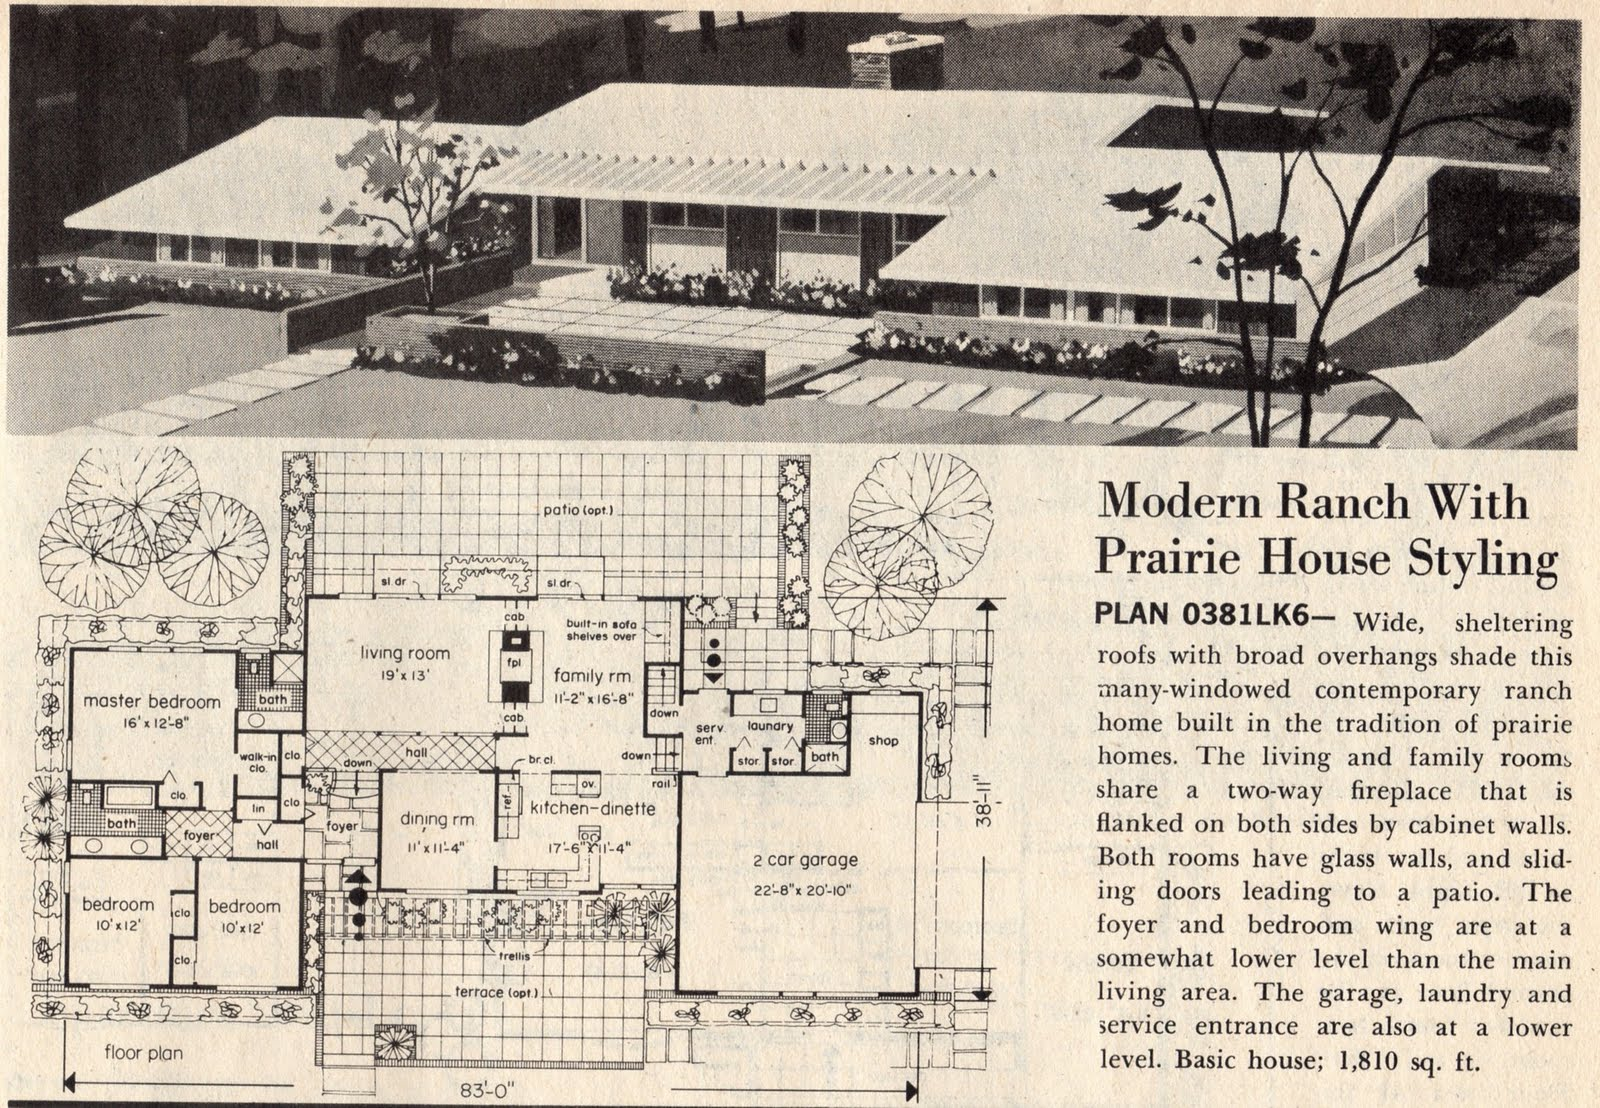 Mad for mid century june 2011 for Modern ranch plans